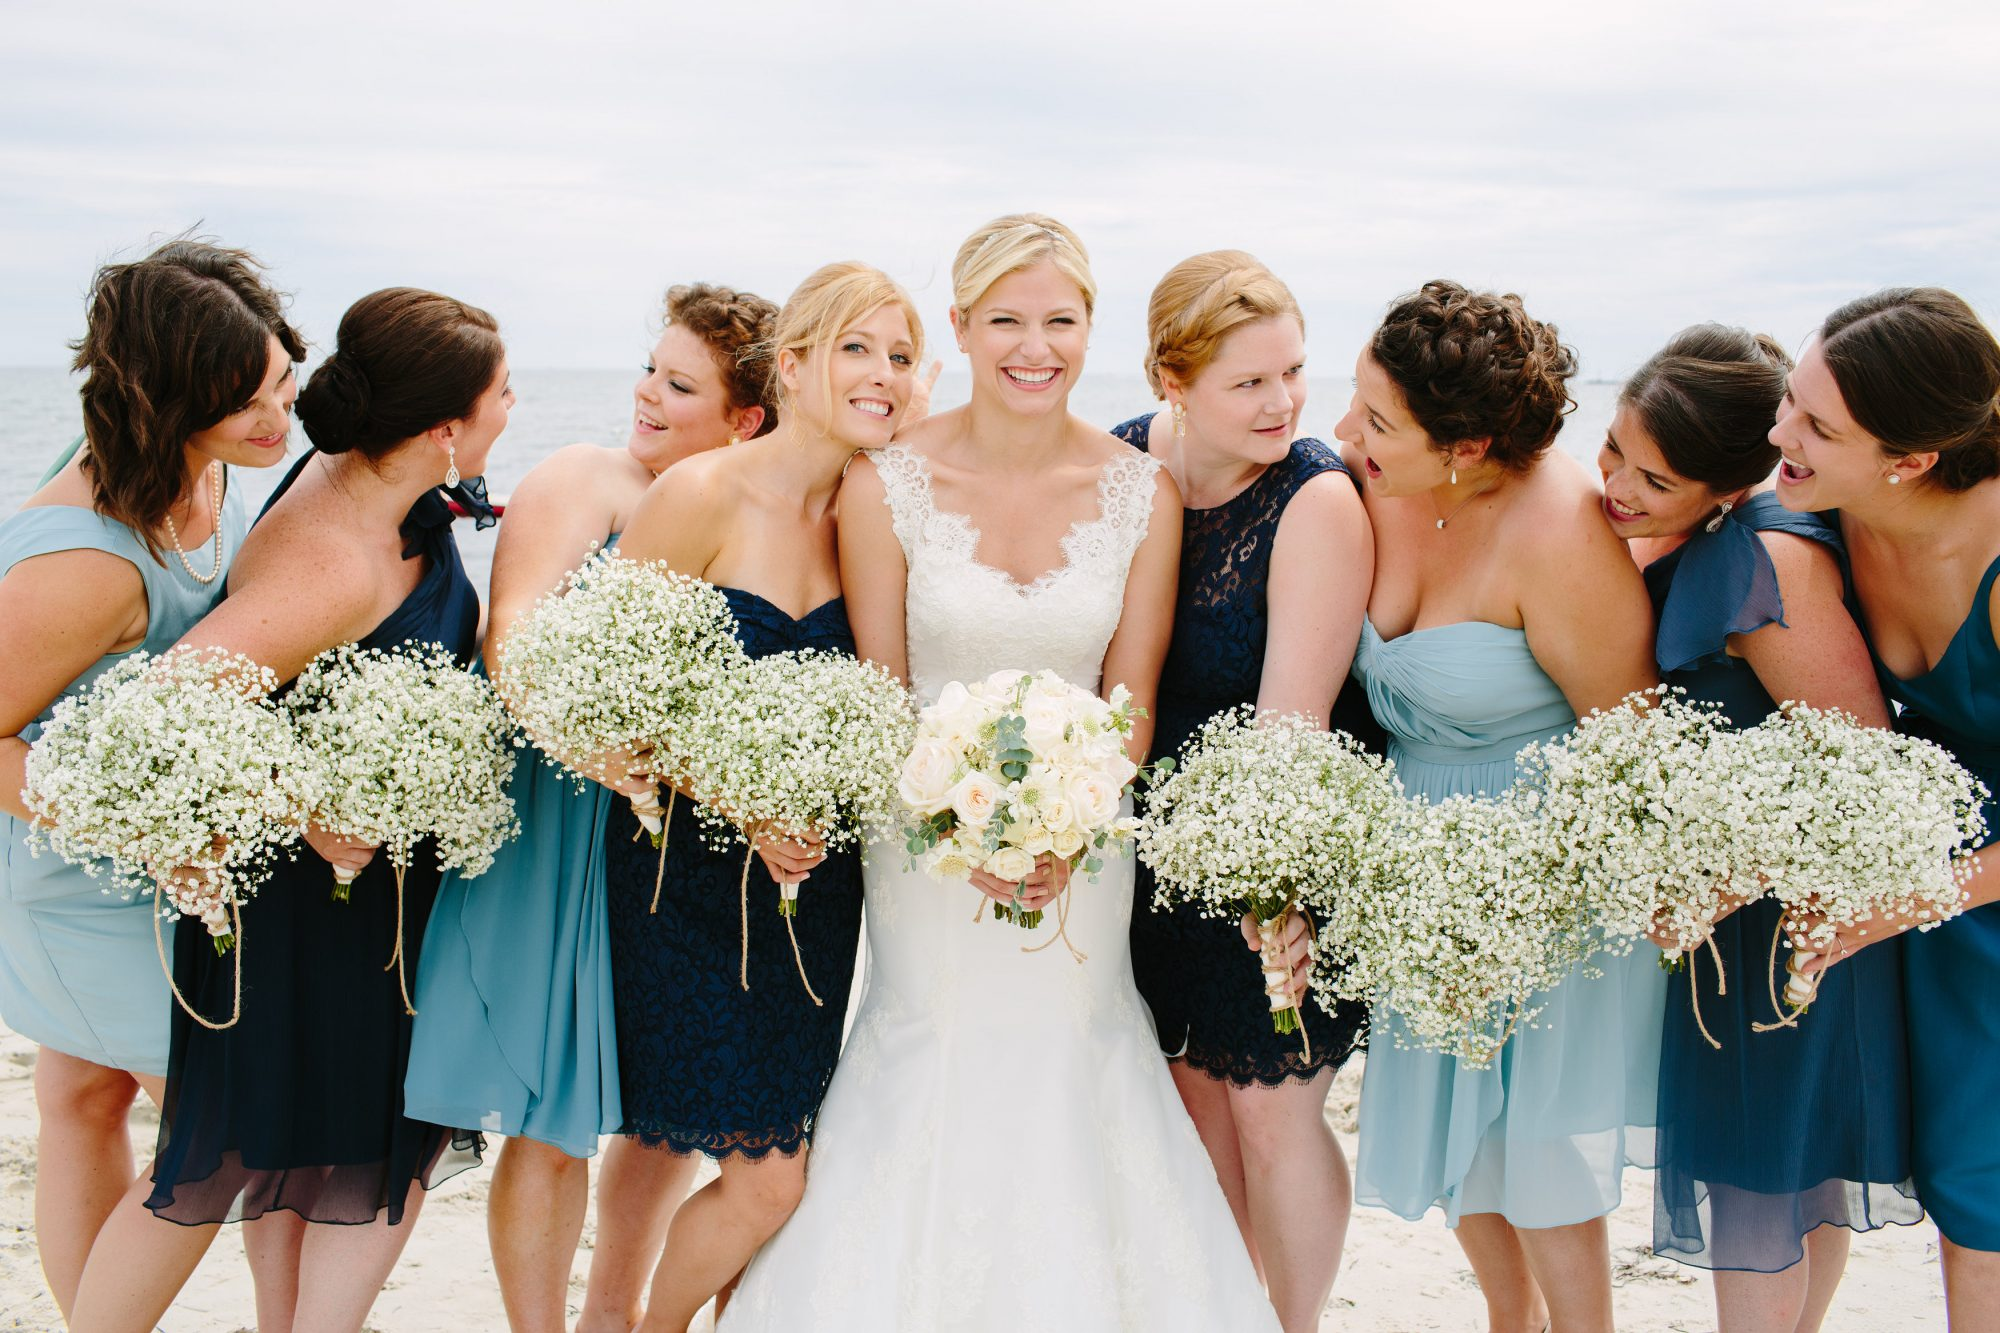 Bridal party wearing mix and match dresses